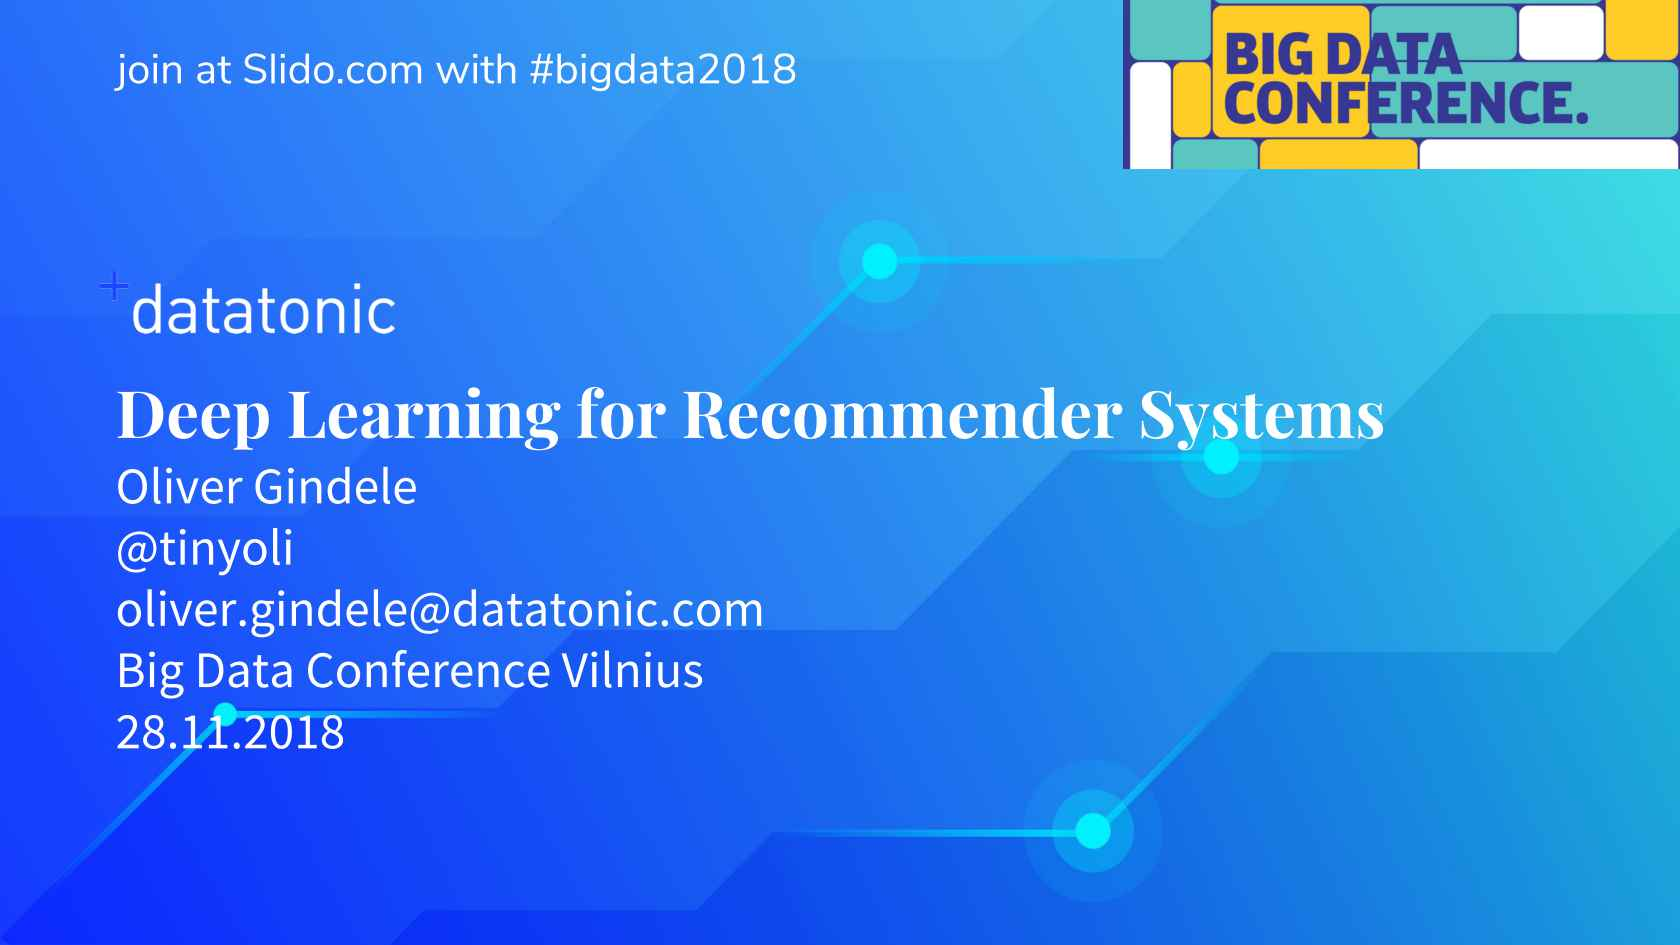 Deep Learning for Recommender Systems